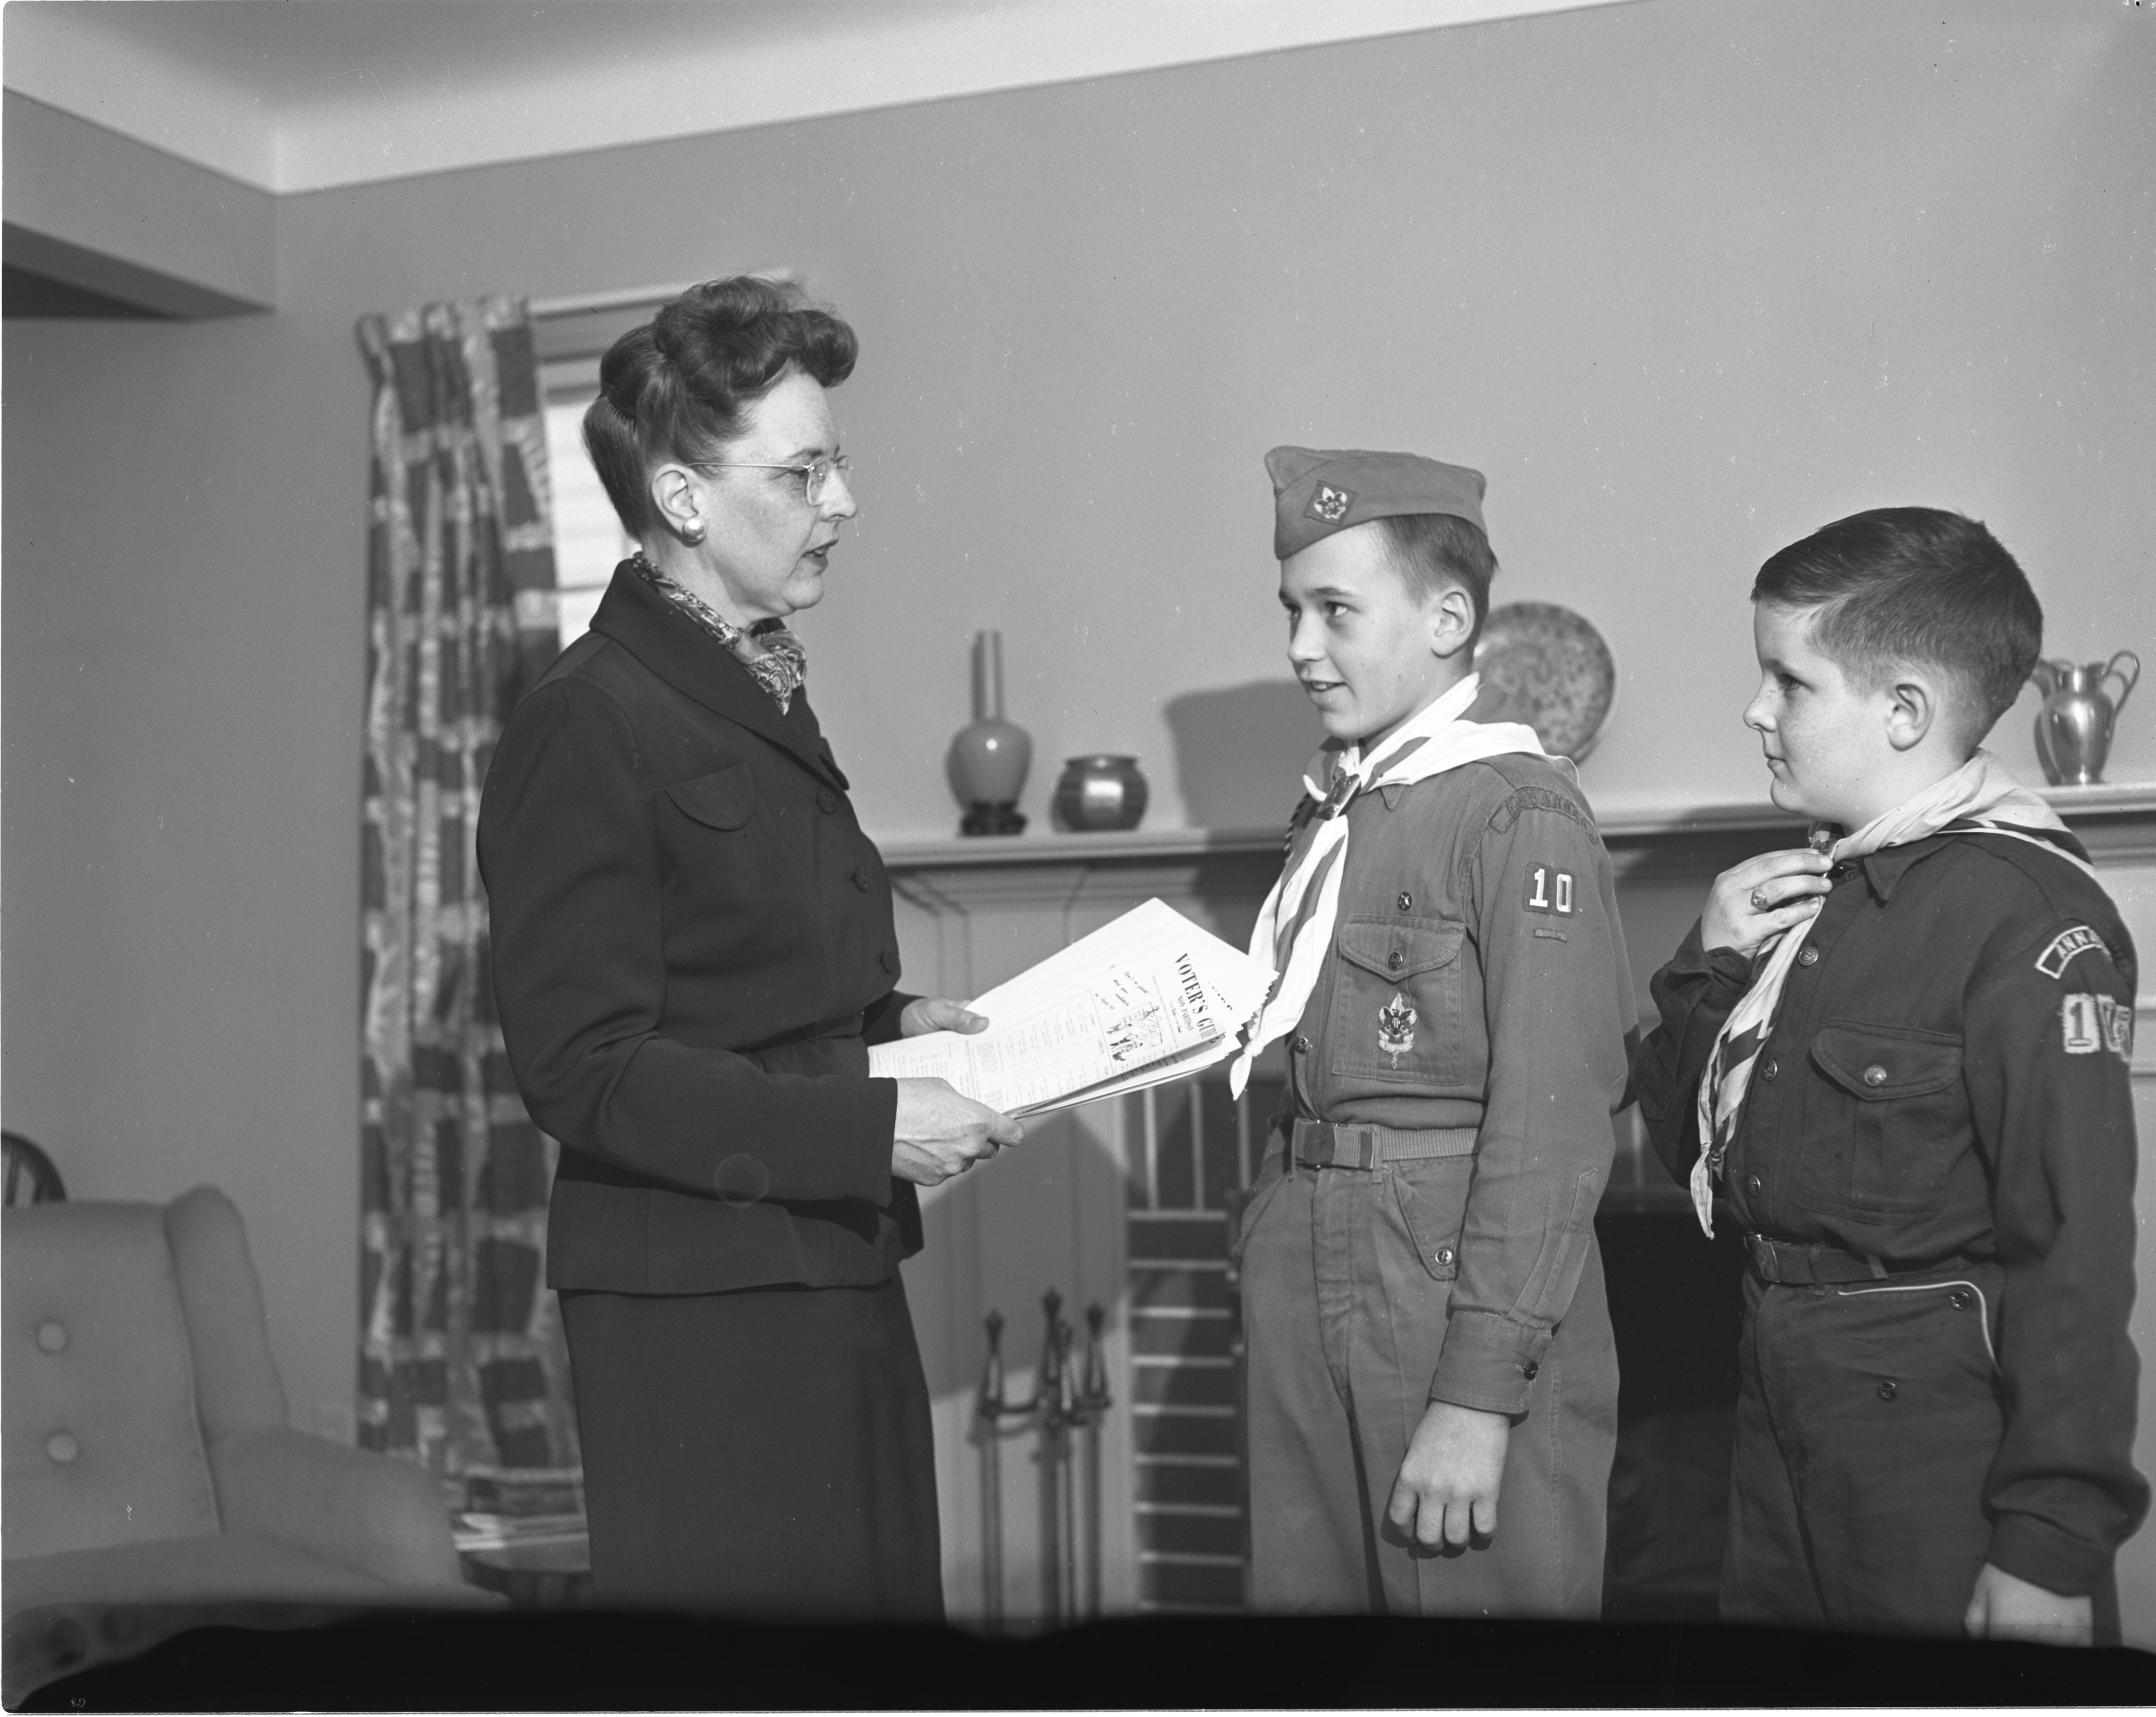 Boy Scouts Assist The League Of Women Voters With Distributing Voter Information, March 1952 image